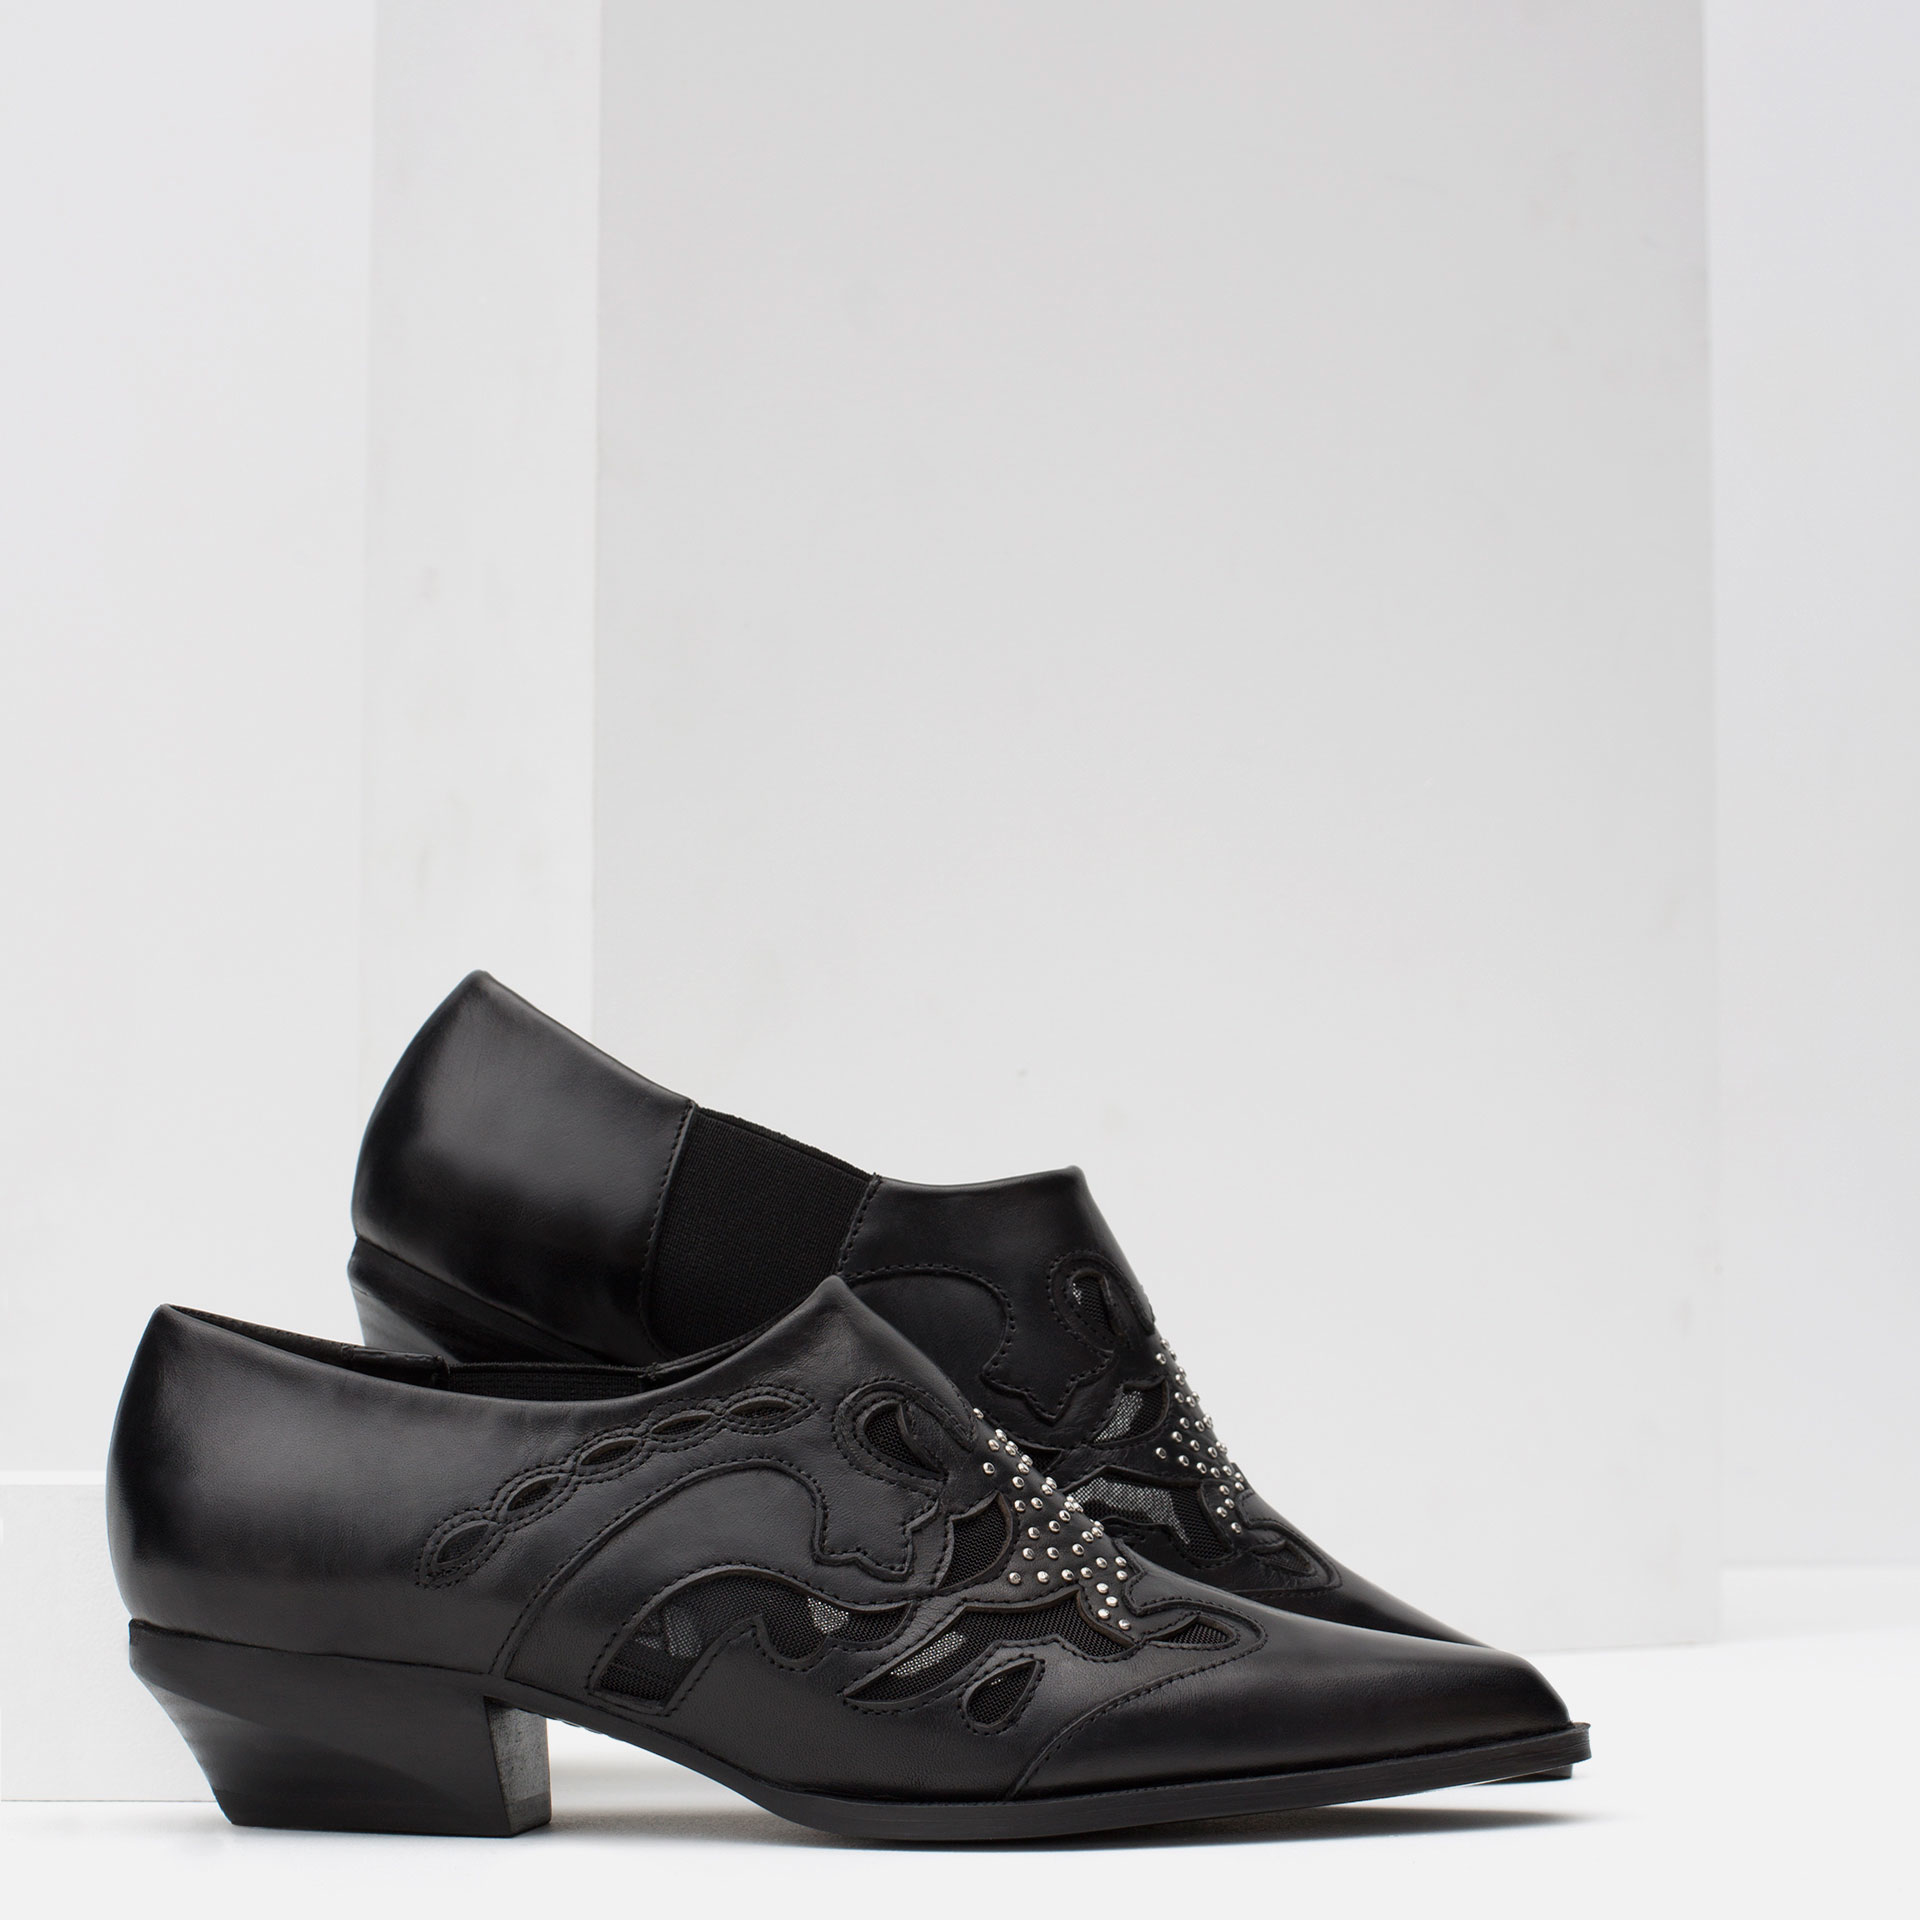 Zara Flat Leather Ankle Boots With Open-work Detail in Black | Lyst